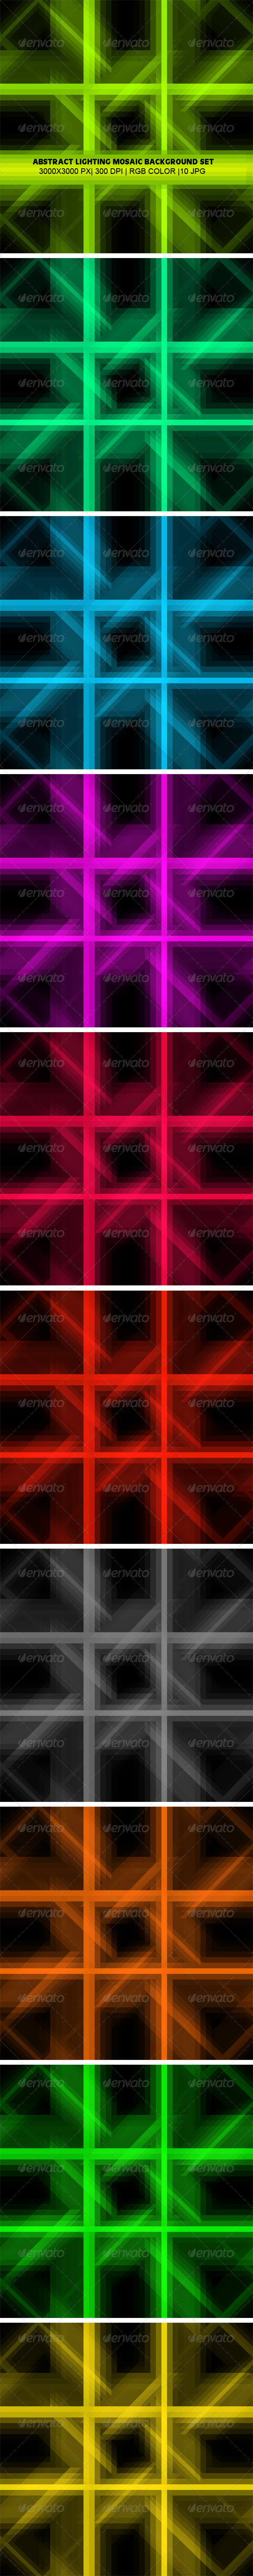 GraphicRiver Lighting Mosaic Background Set 4900528